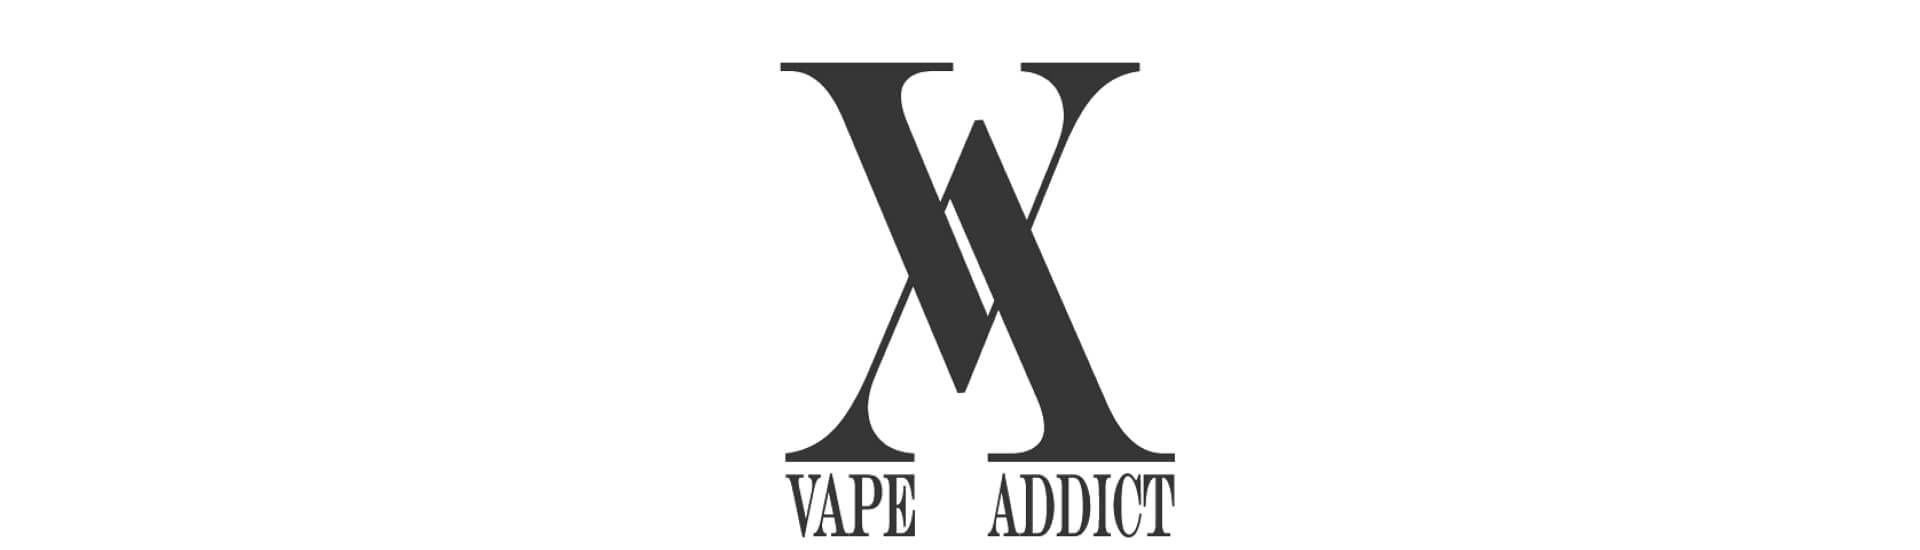 VAPE_MONARCH_SOUTH_AFRICA_E_LIQUID_SOUTH_AFRICA_VAPE_ADDICT_BANNER